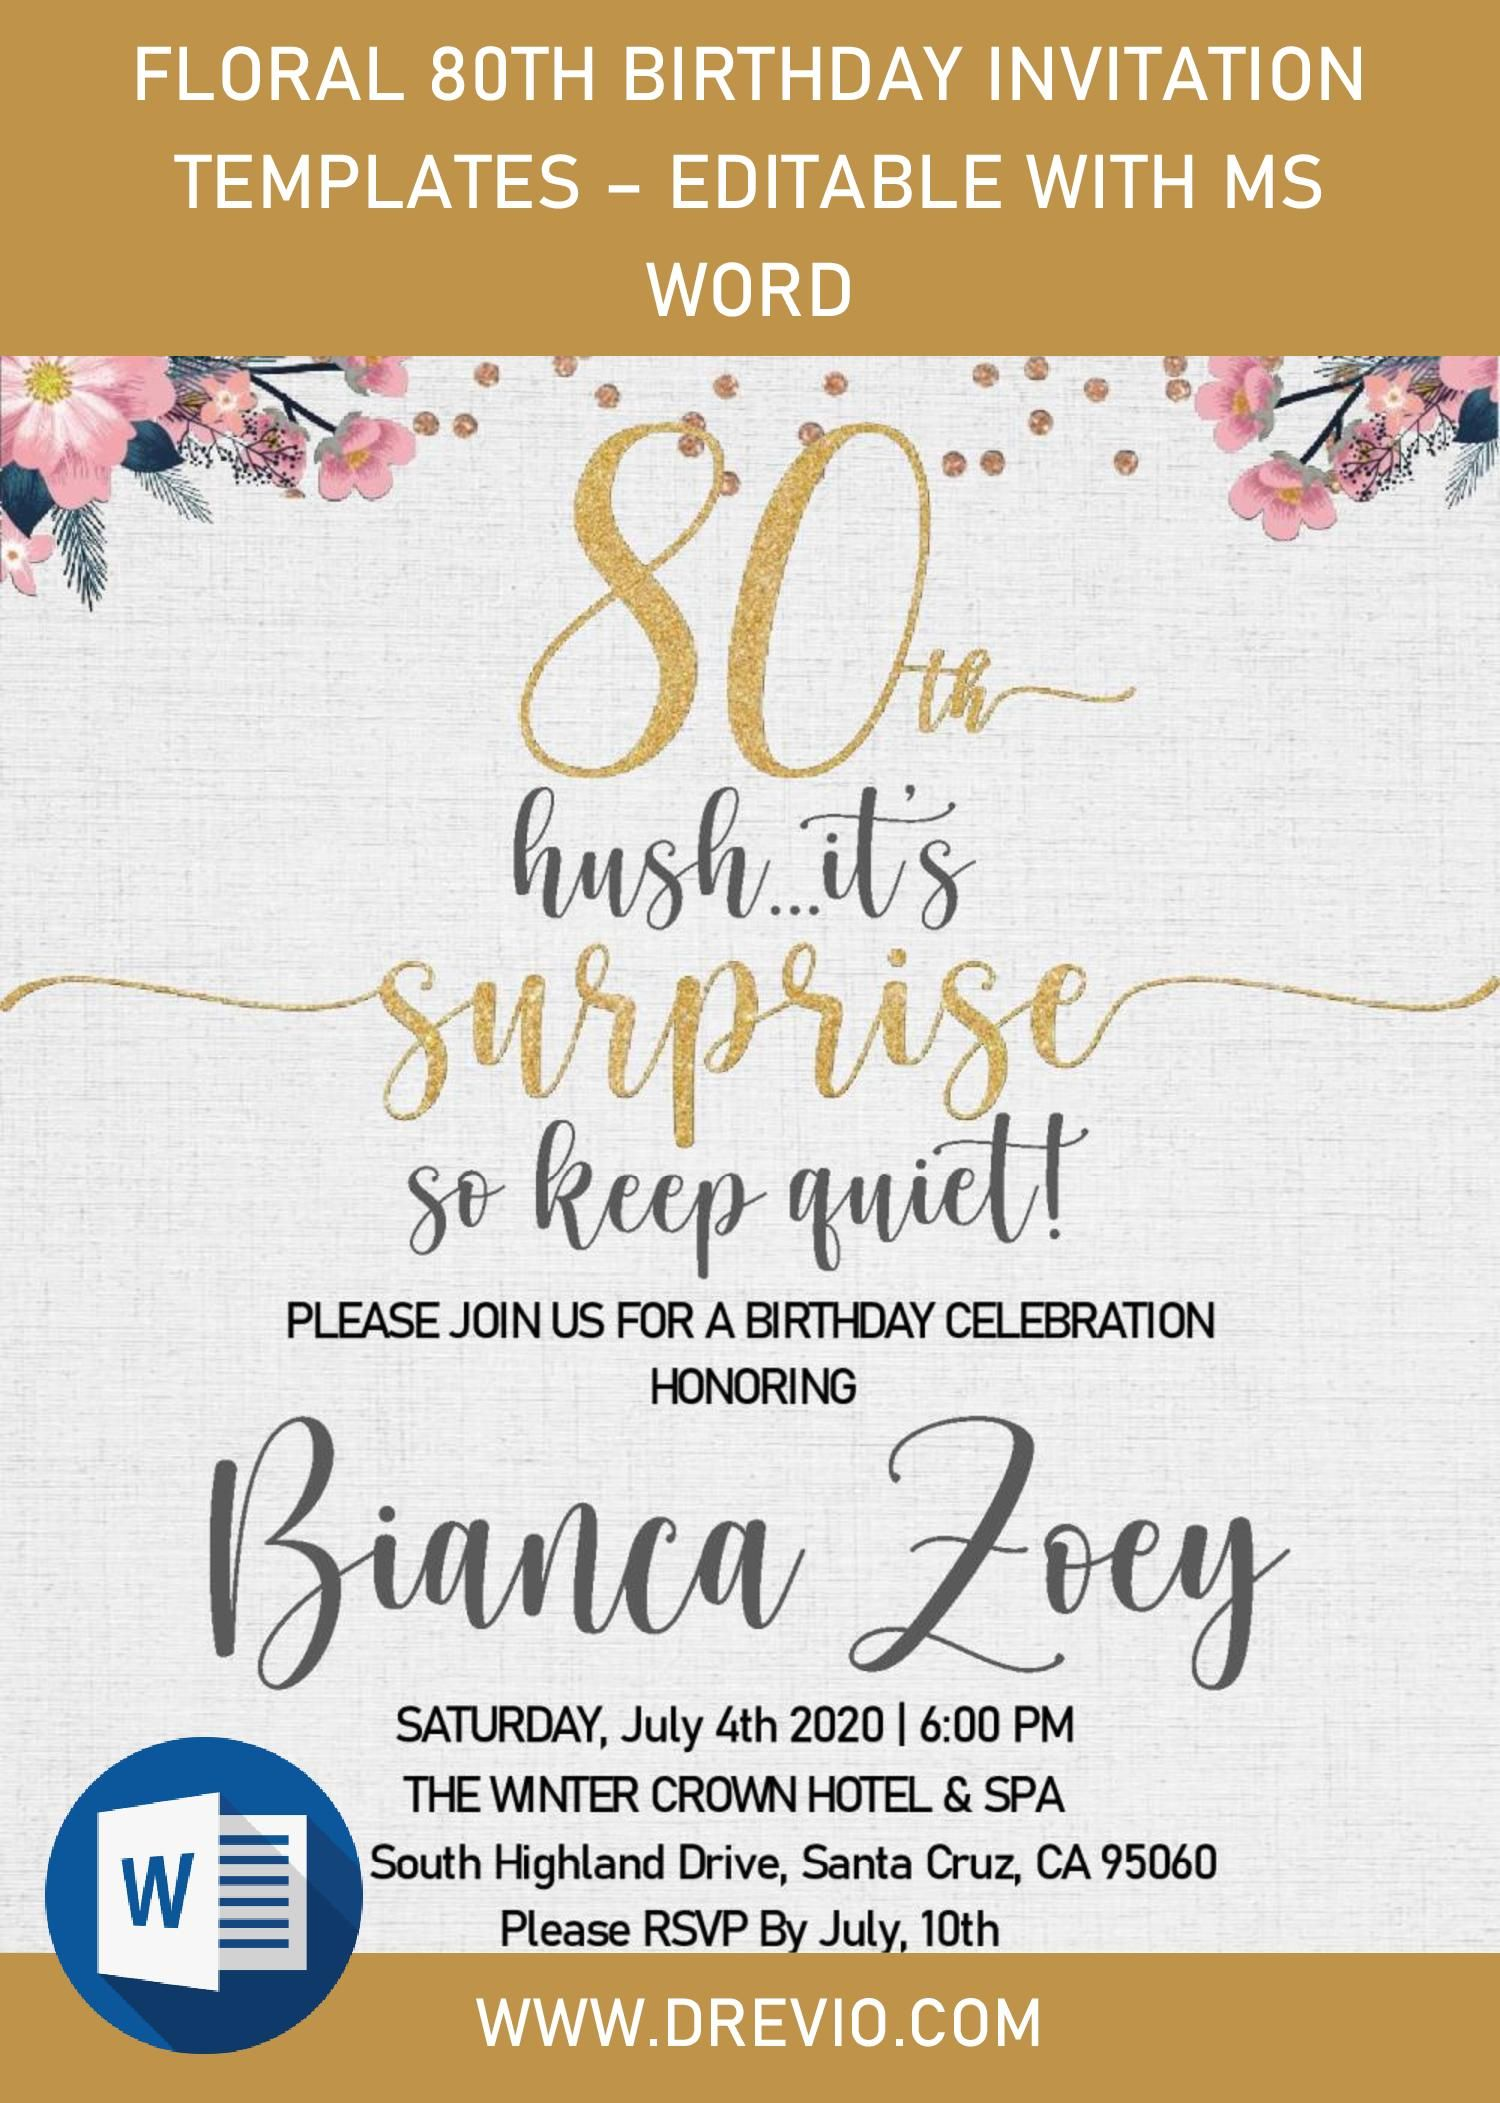 Floral 80th Birthday Invitation Templates Editable With Ms Word 80th Birthday Invitations Birthday Invitation Templates Birthday Invitations